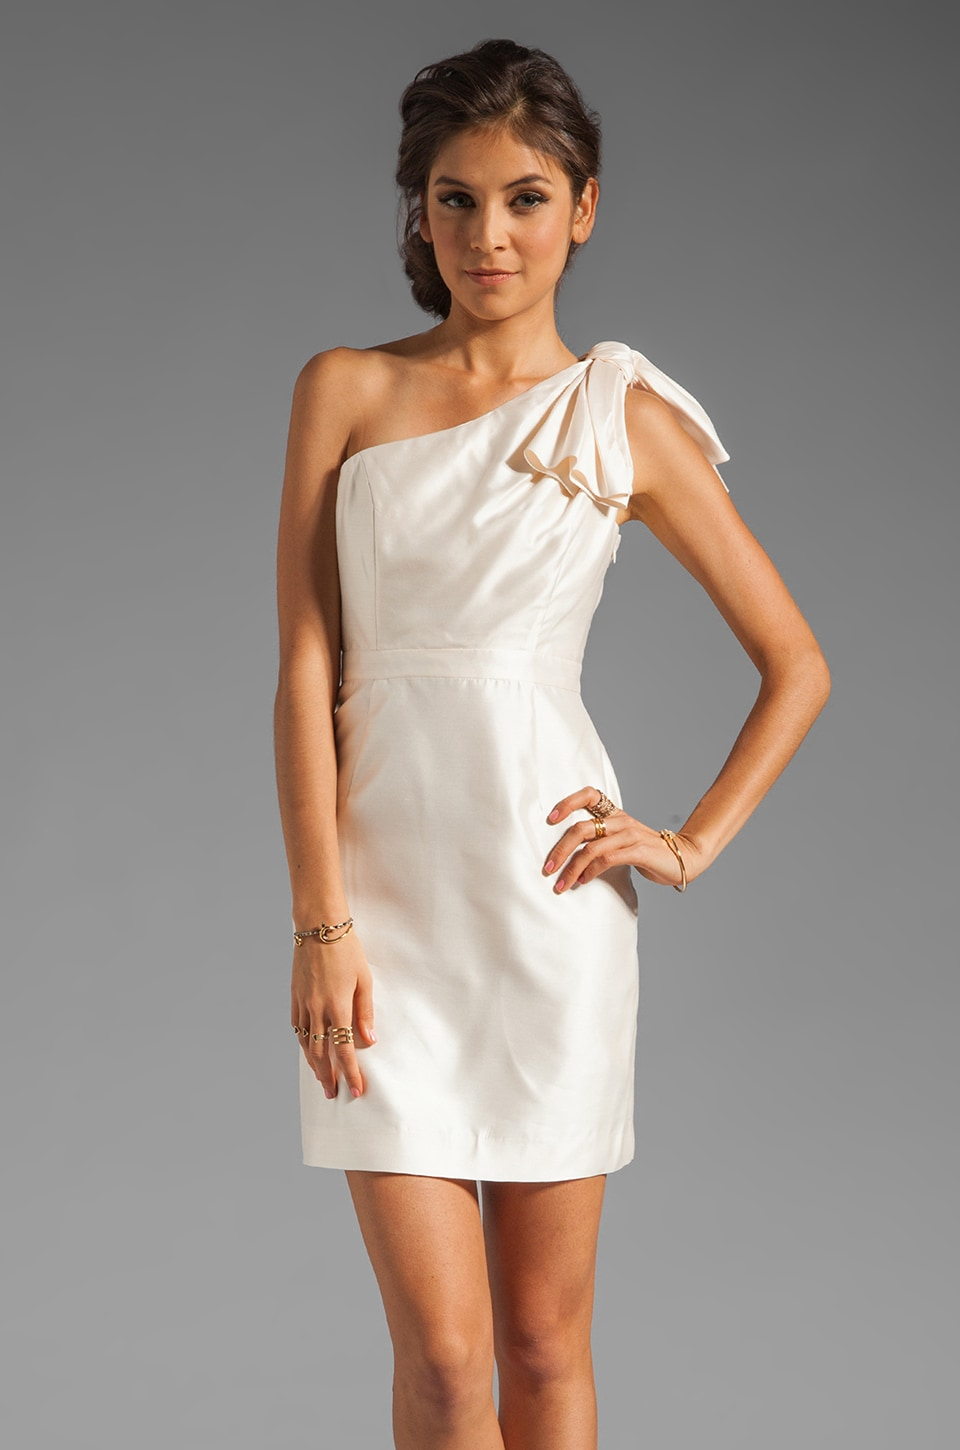 Shoshanna Silk Gazar 2 Amber Dress in Winter White